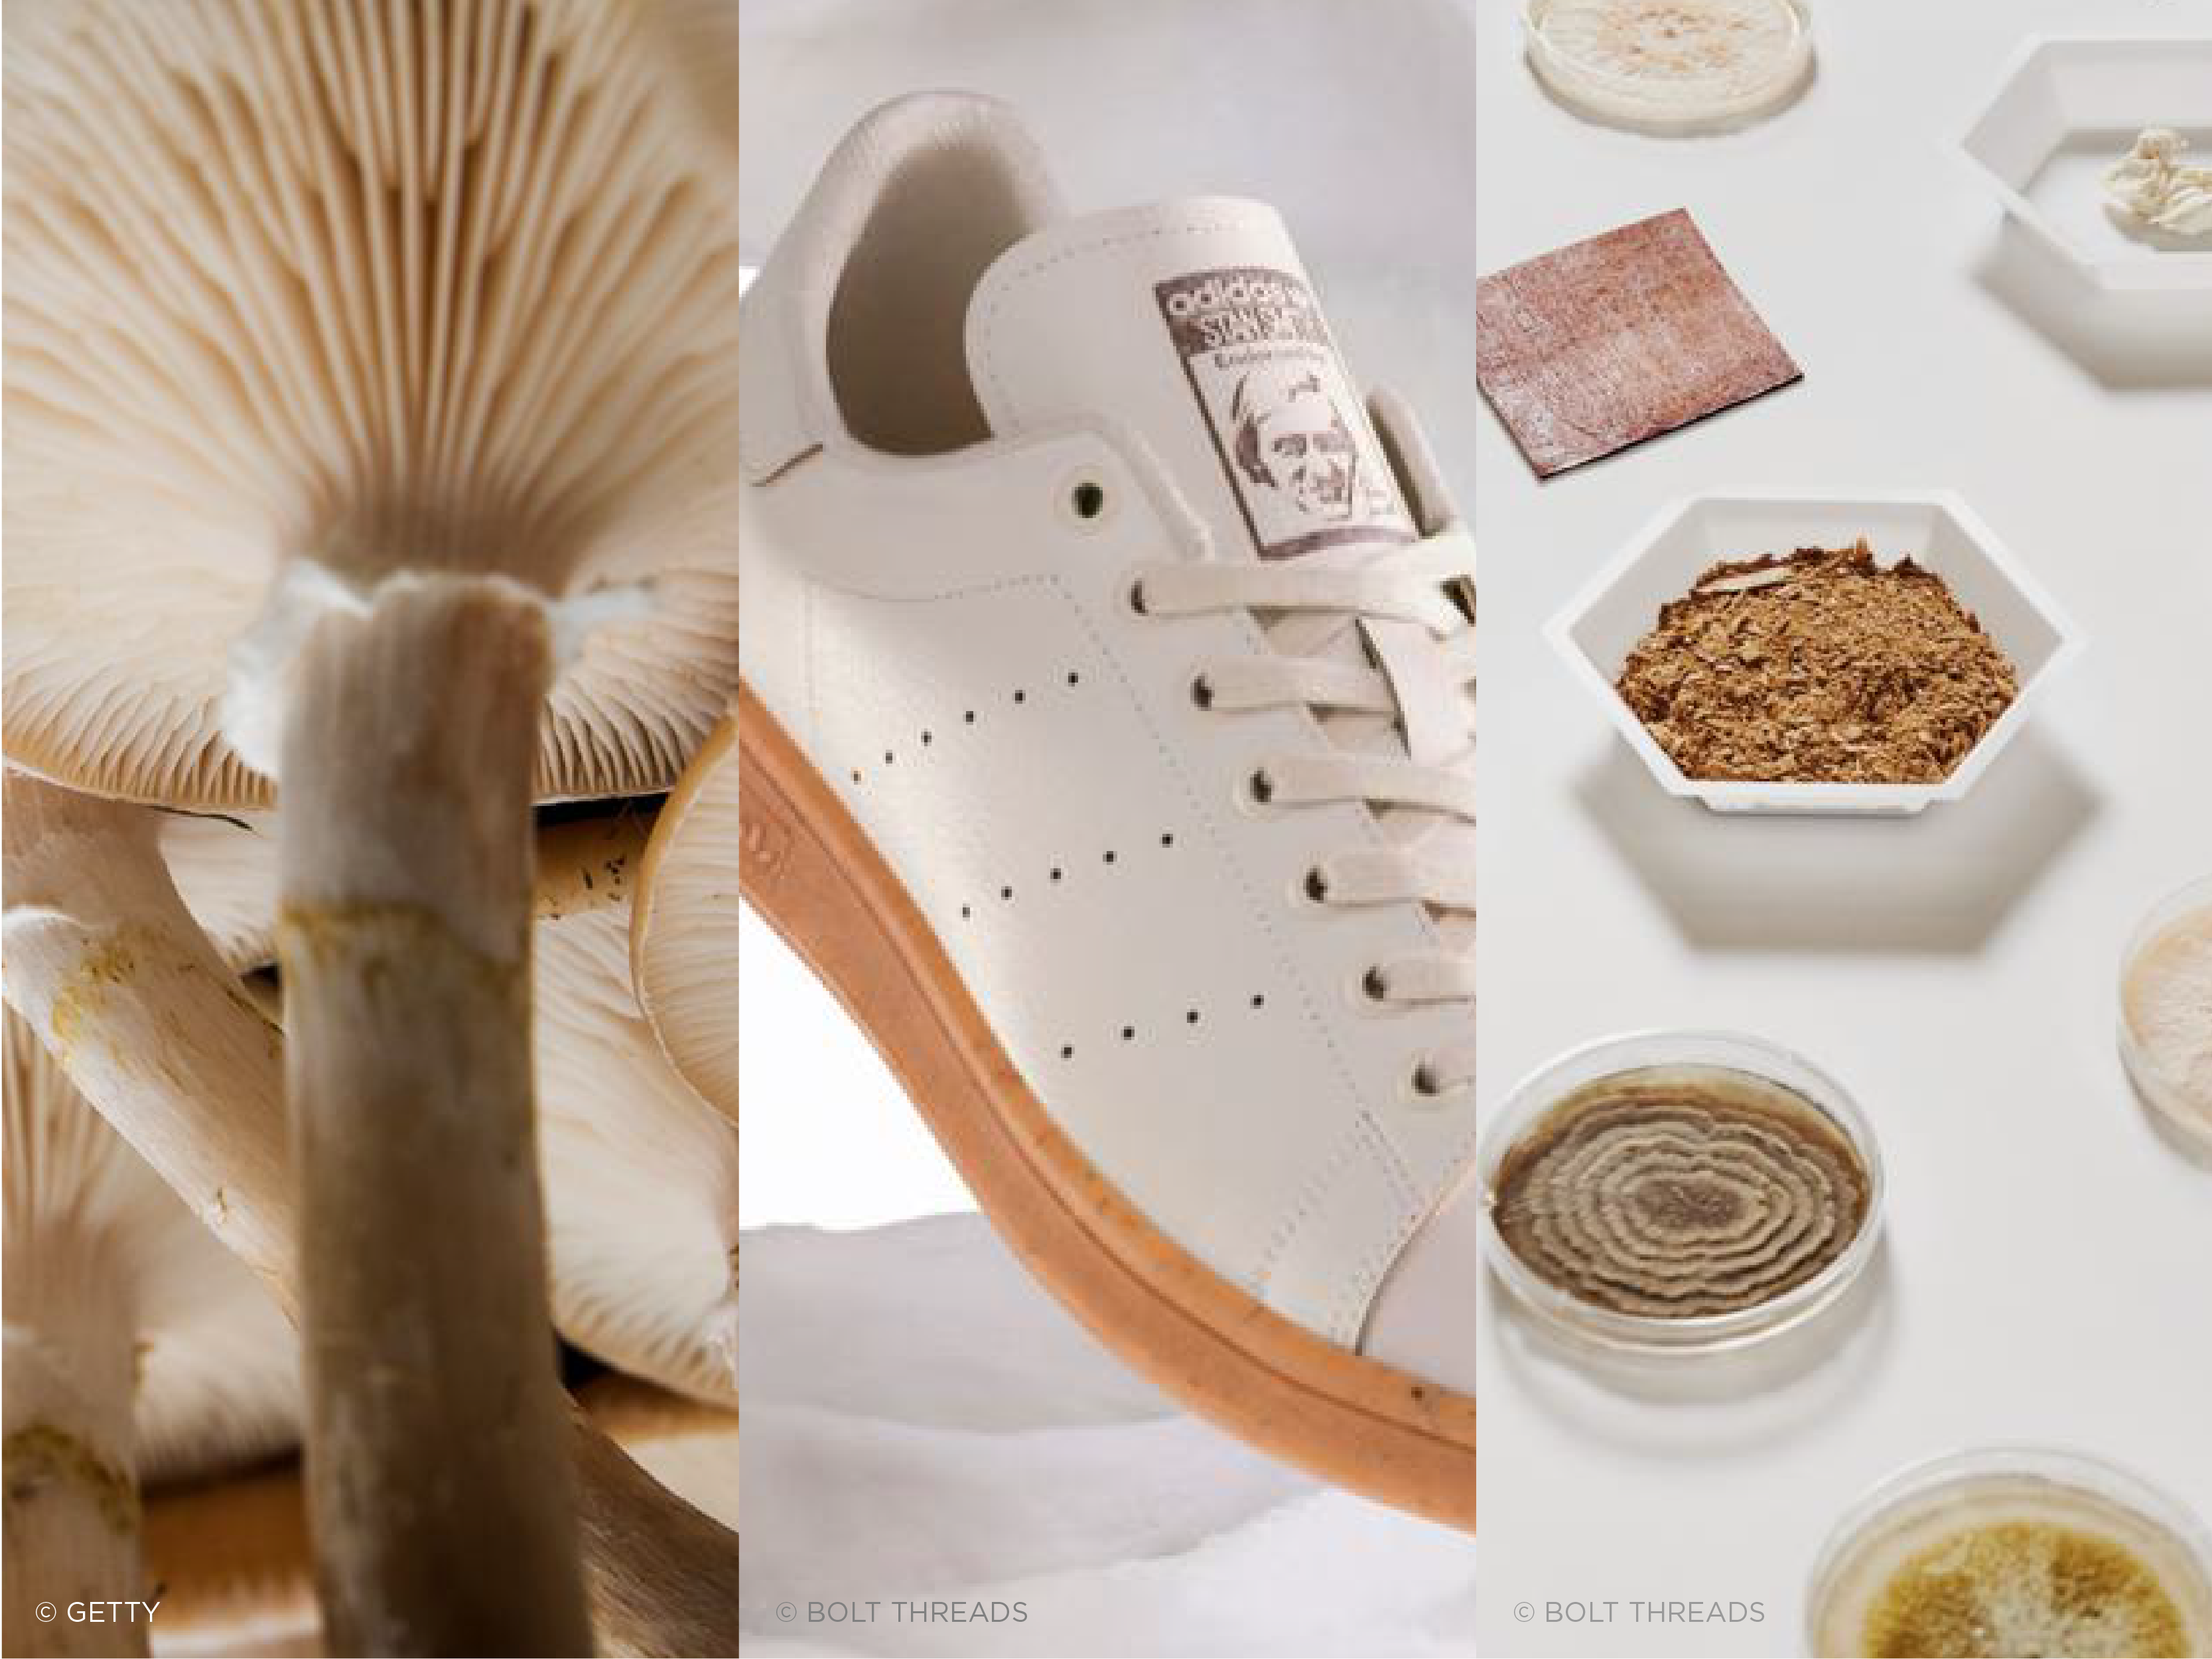 triptych image featuring Adidas's collaboration with Bolt Threads on a new mushroom-based shoe